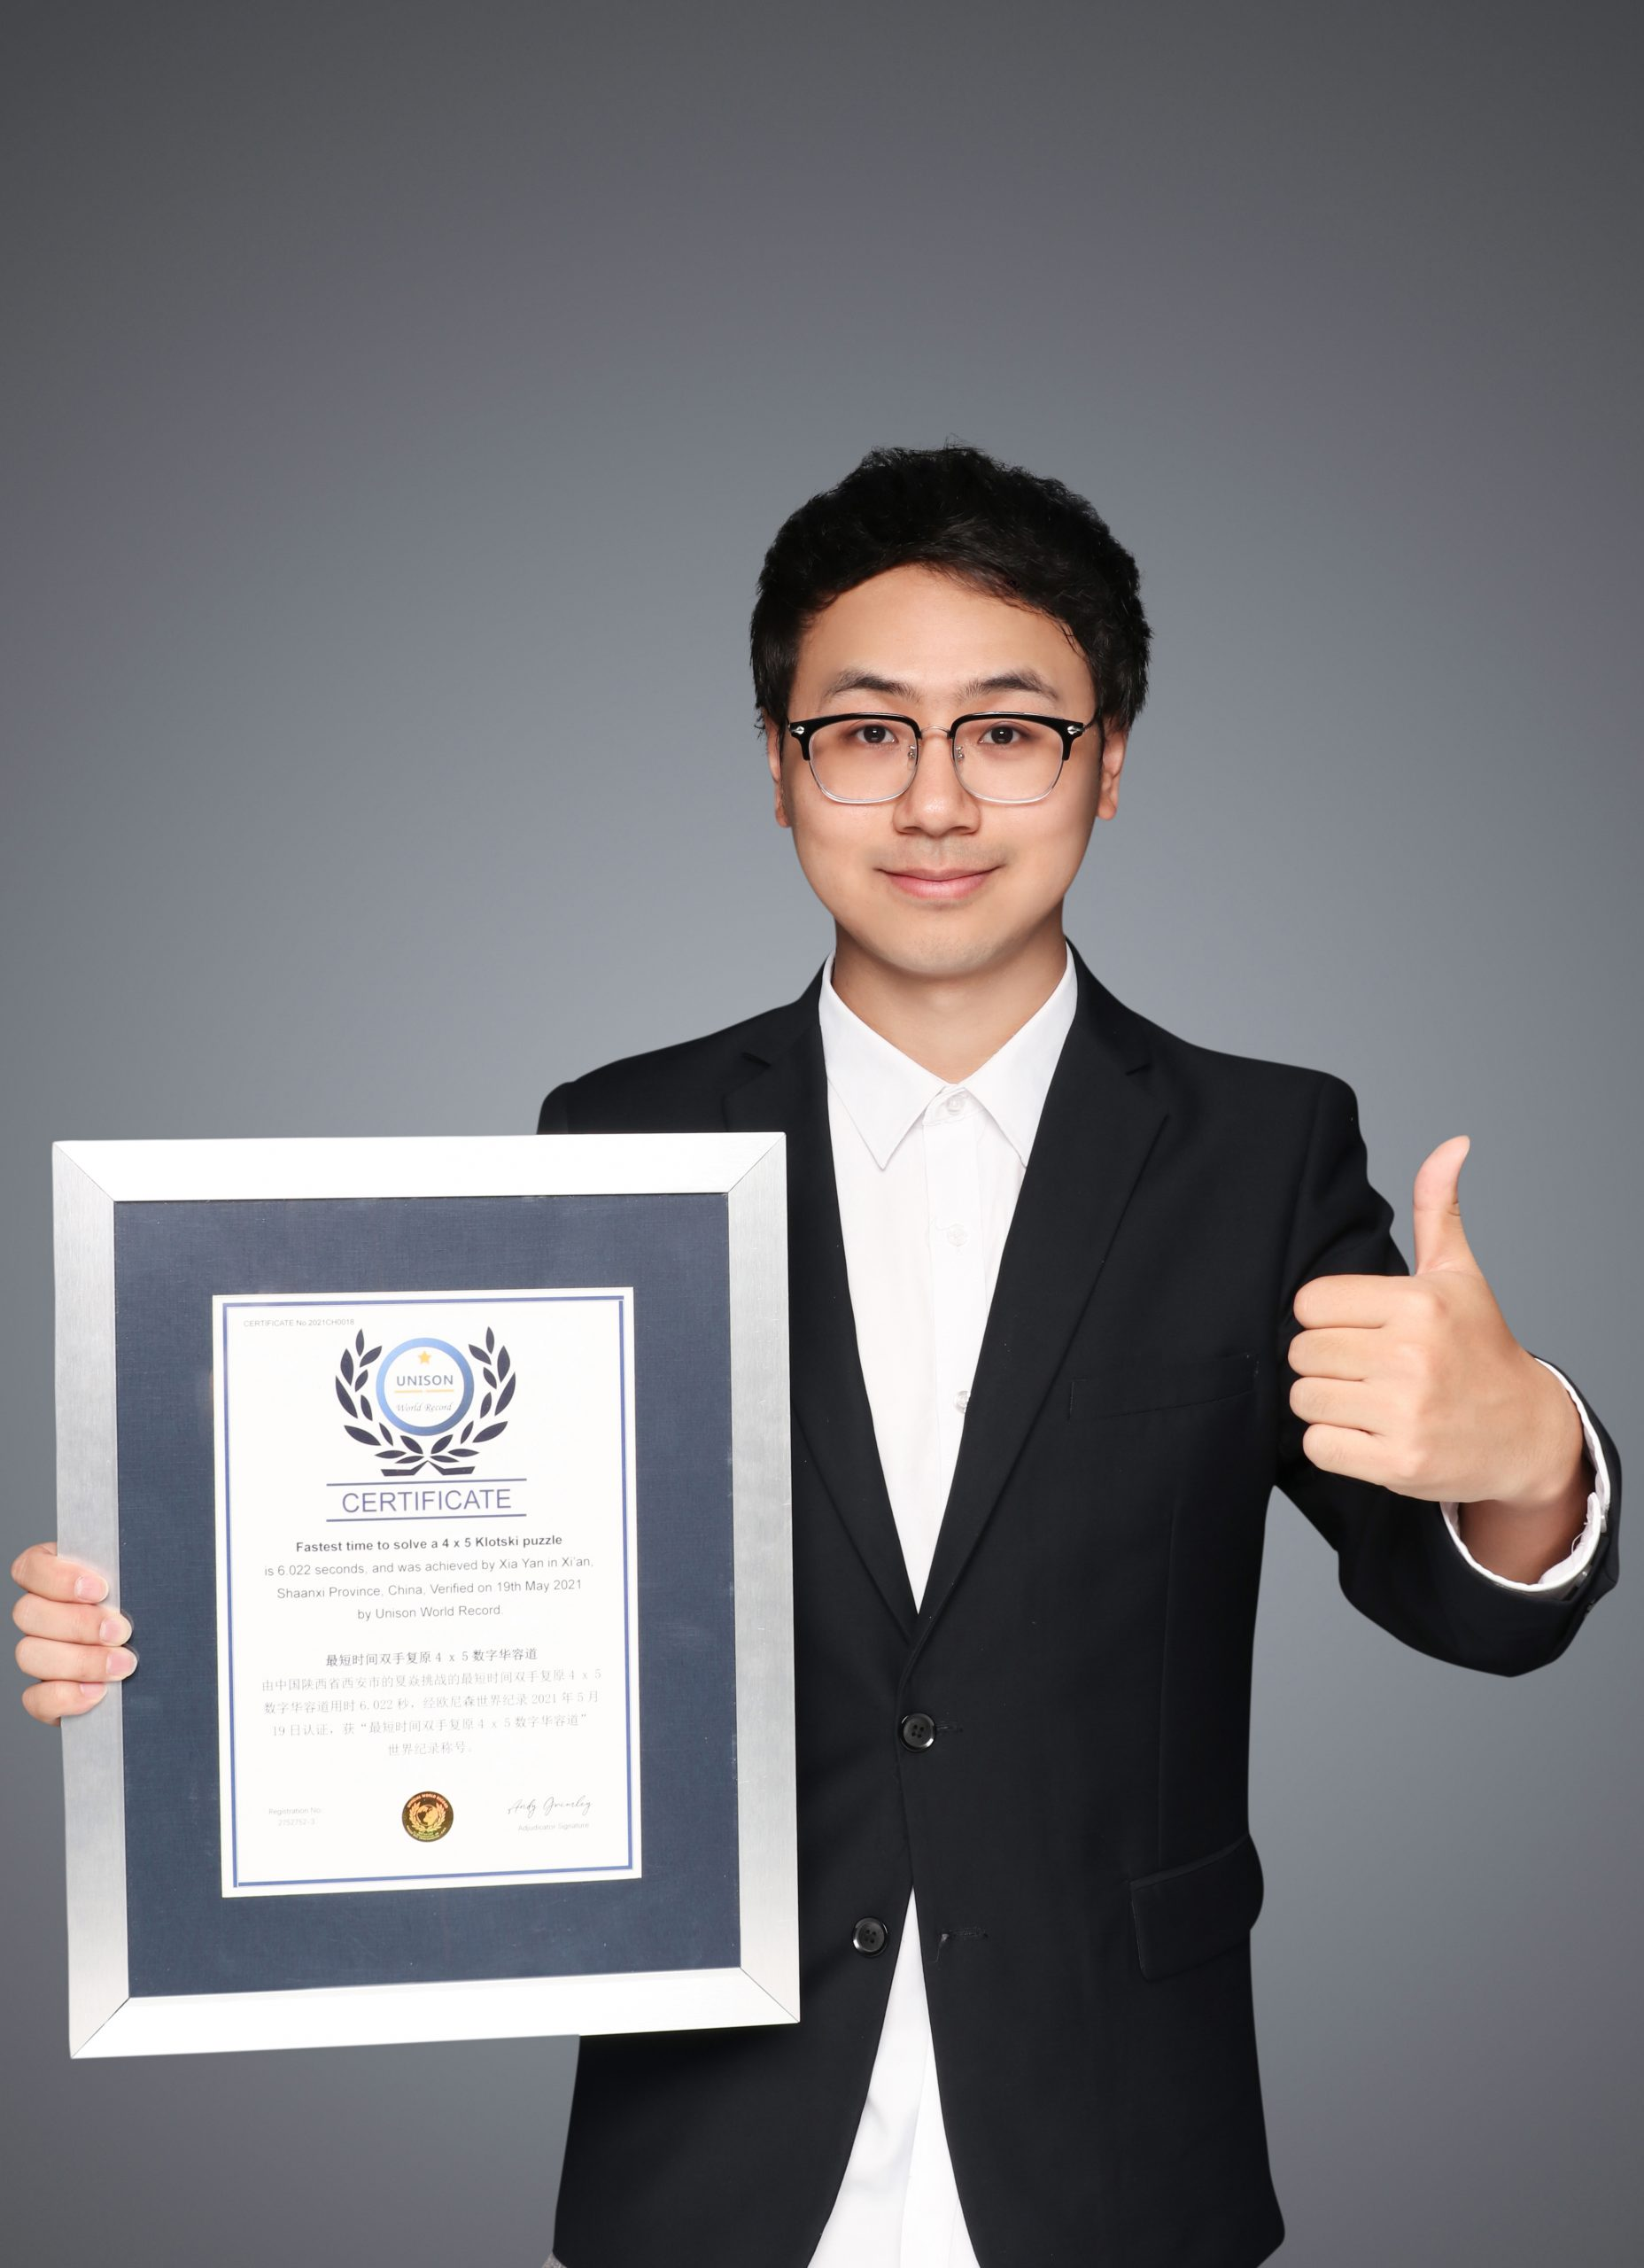 Chinese hand sports master refreshed world record for solving a 4 x 5 Klotski puzzle 1